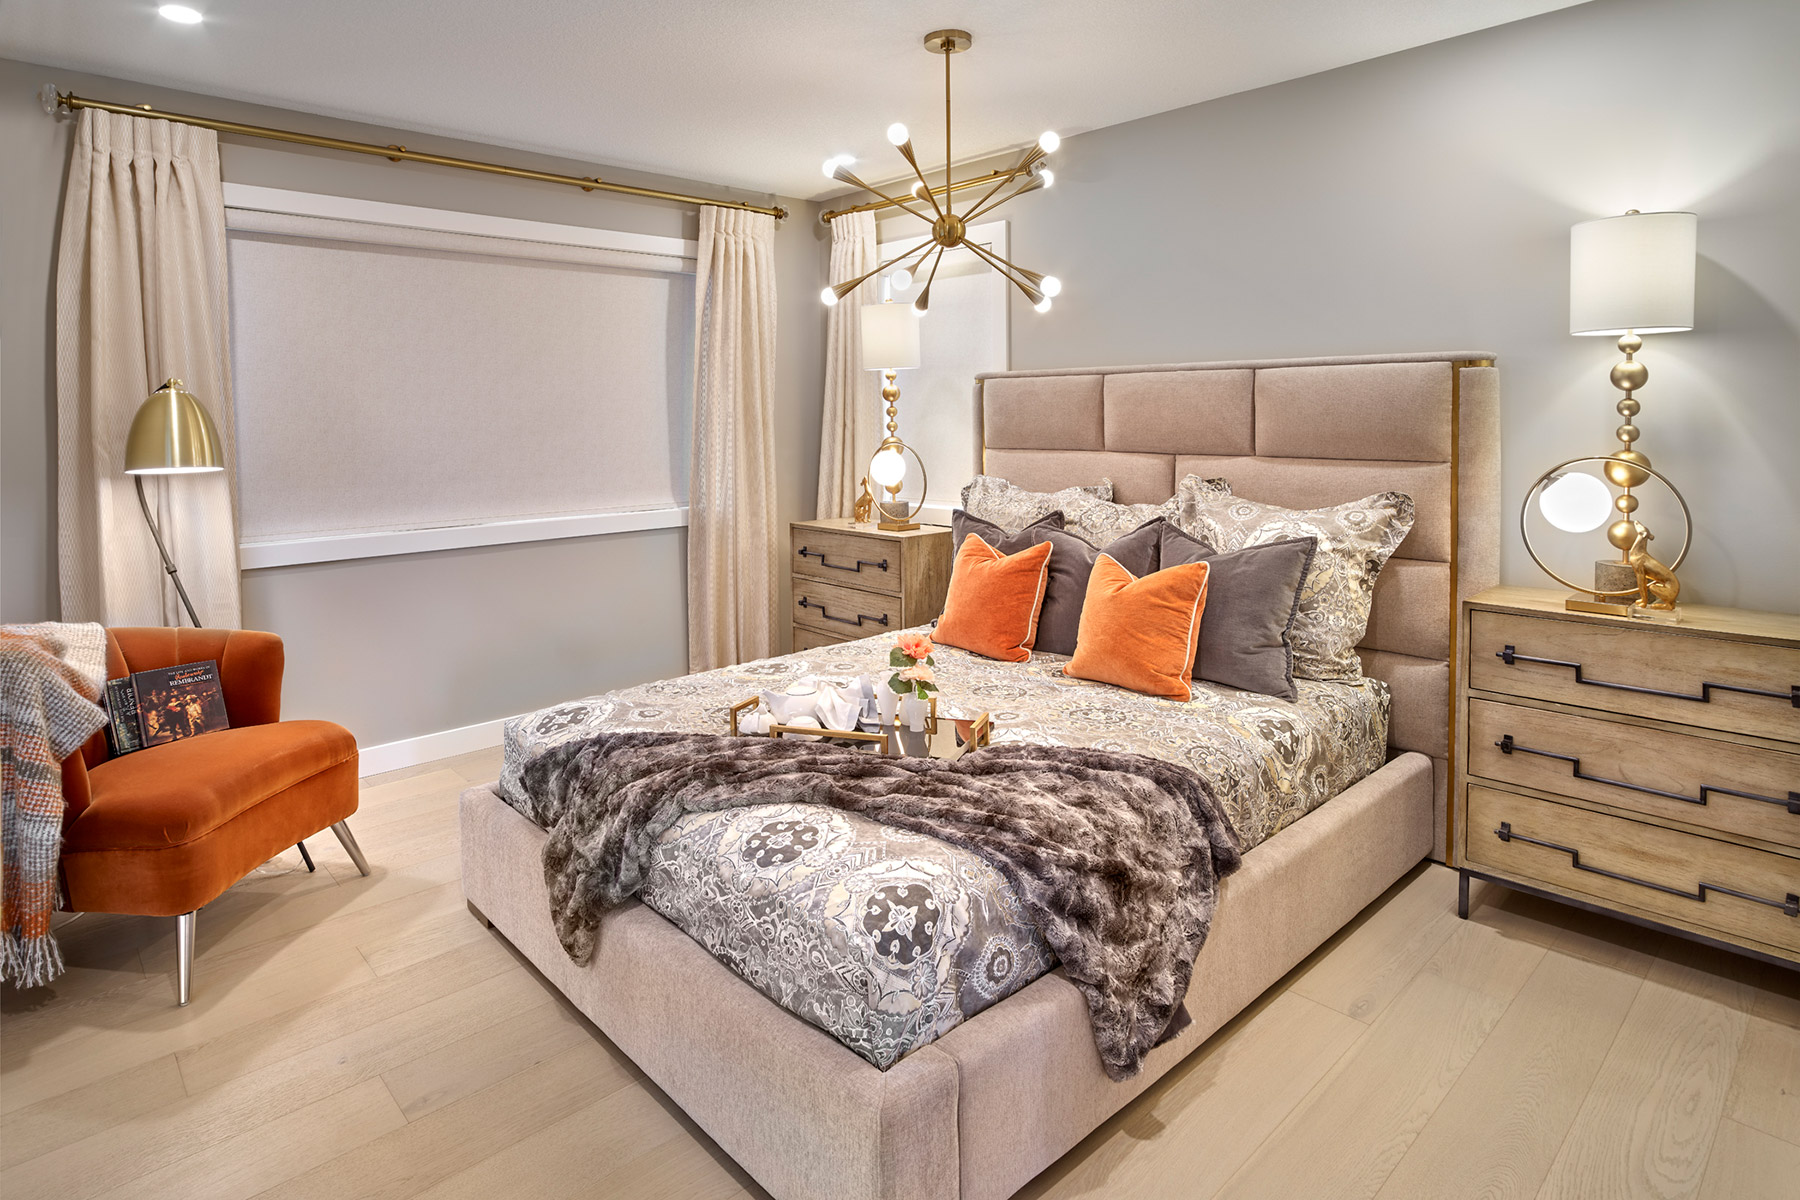 Eclipse Corner Plan Bedroom at Crescent Trails in Edmonton Alberta by Mattamy Homes